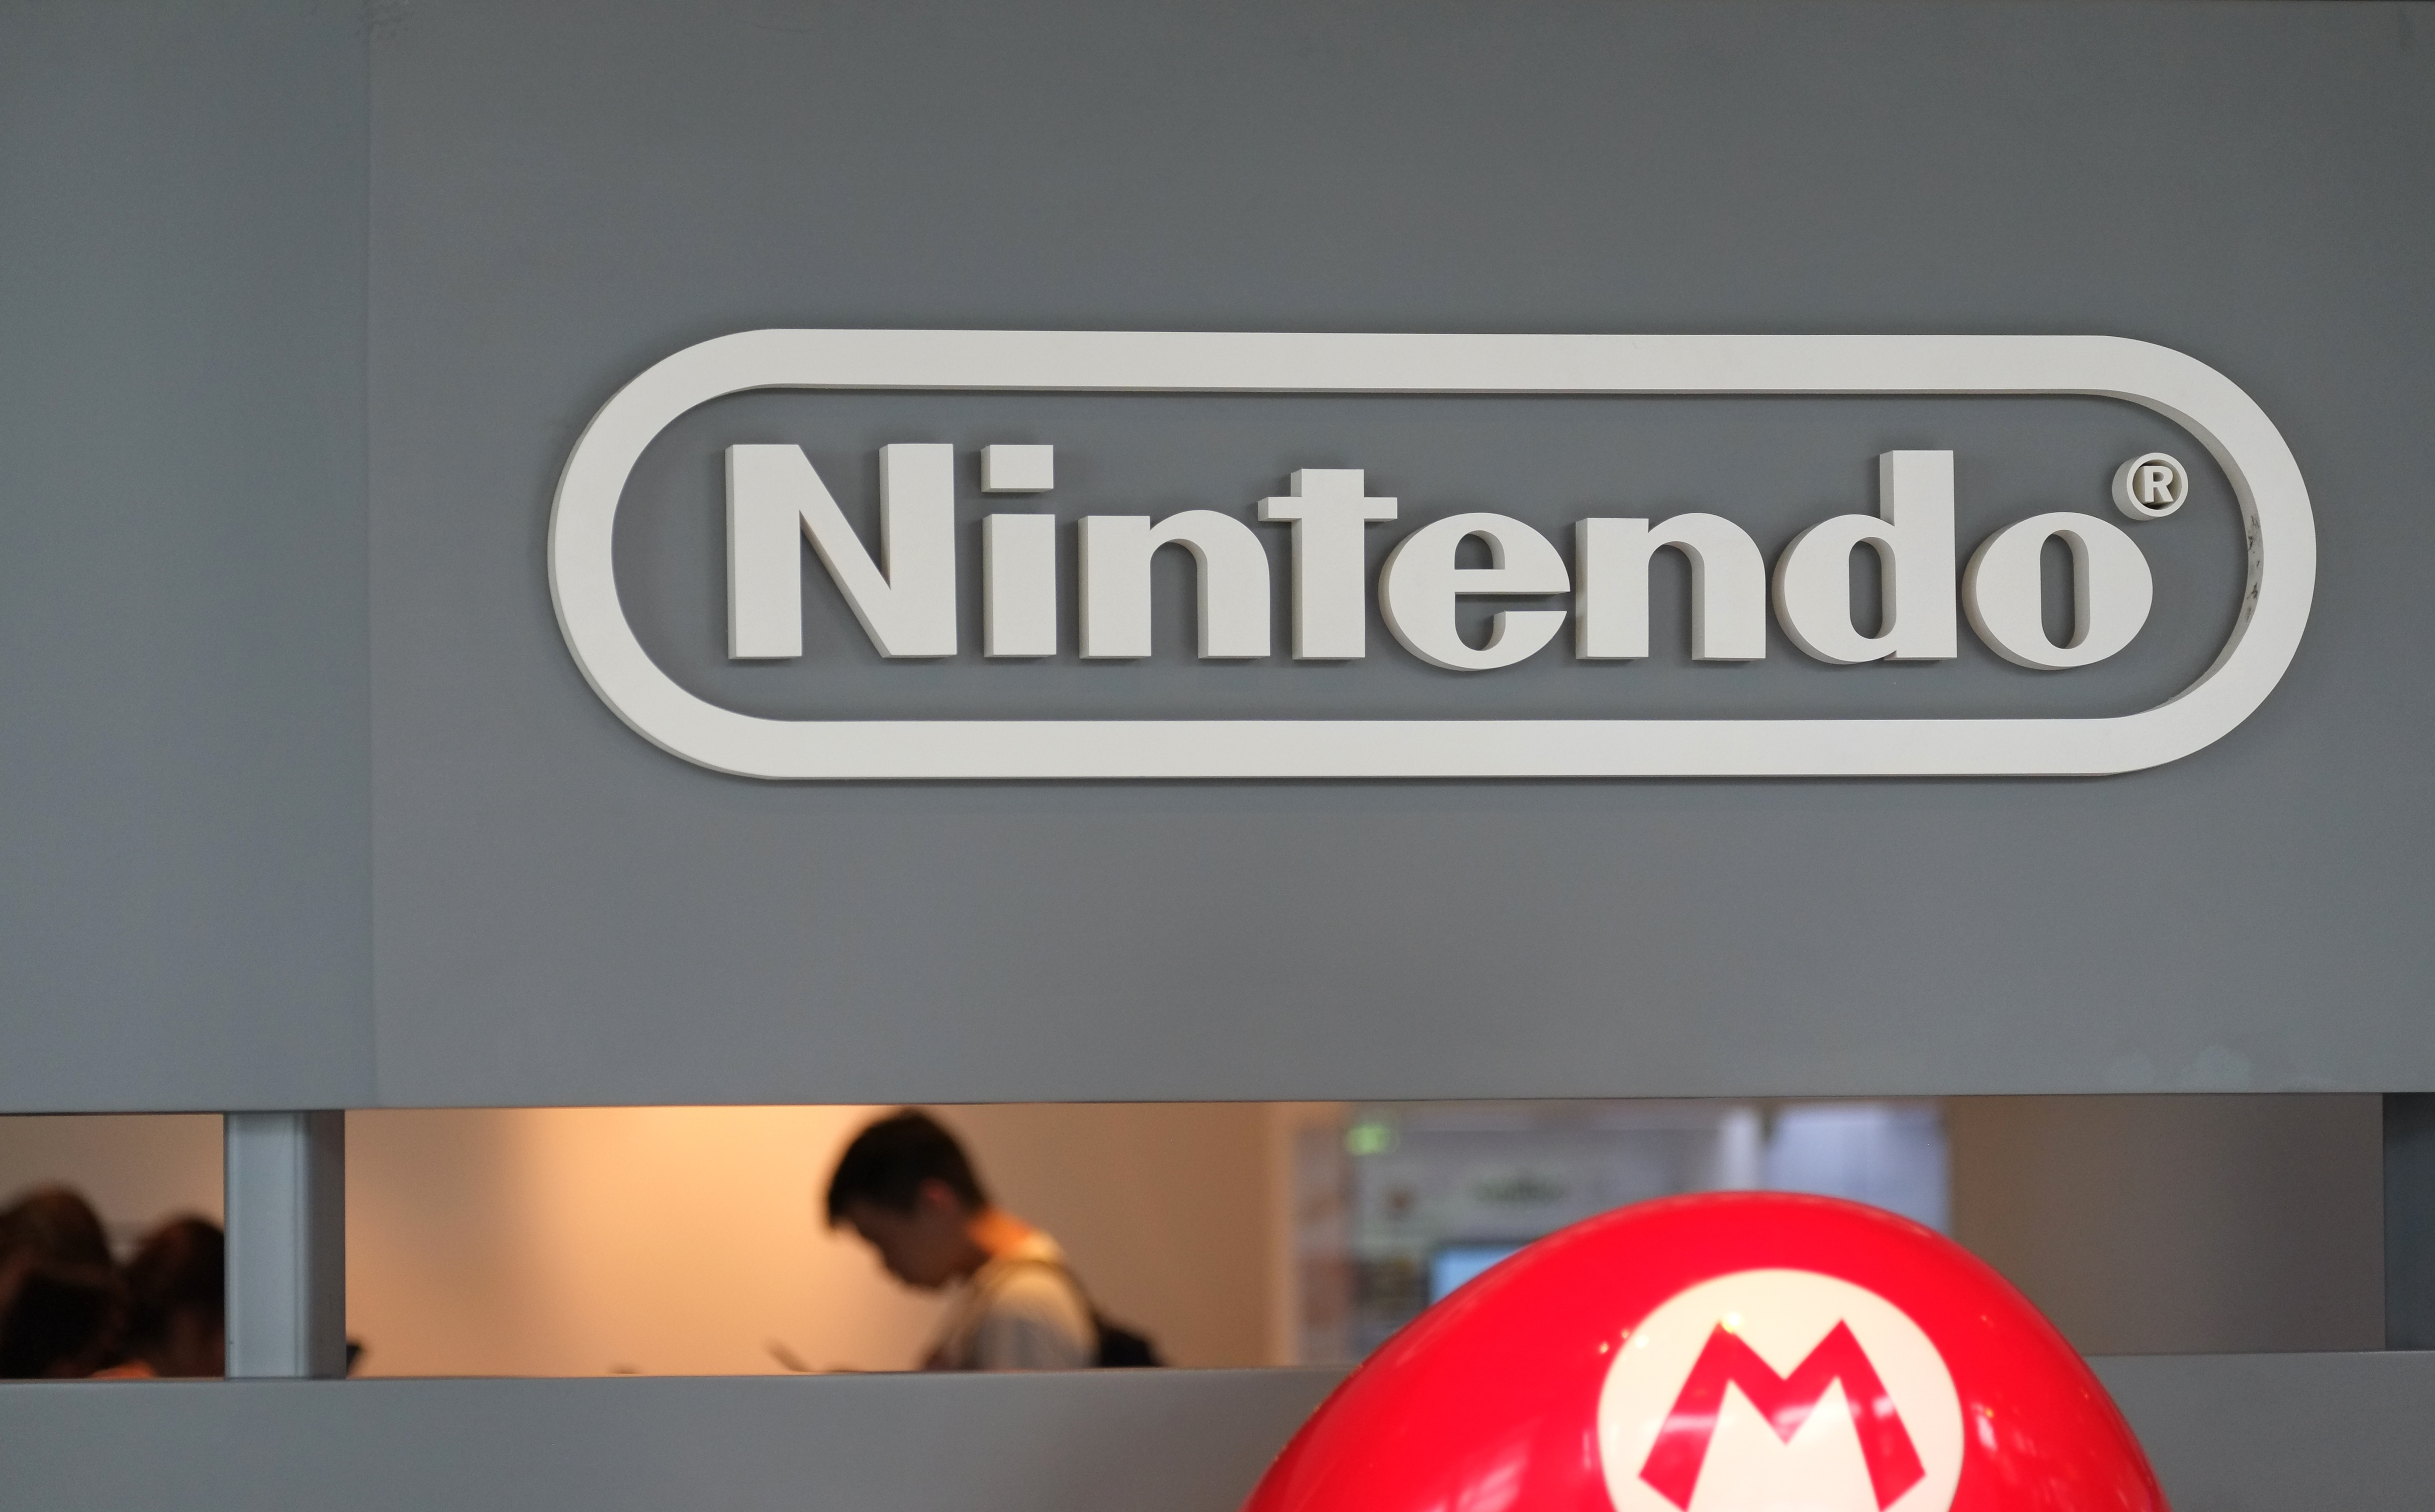 The logo of Japanese gaming giant Nintendo is displayed at a show room in Tokyo on July 20, 2016.